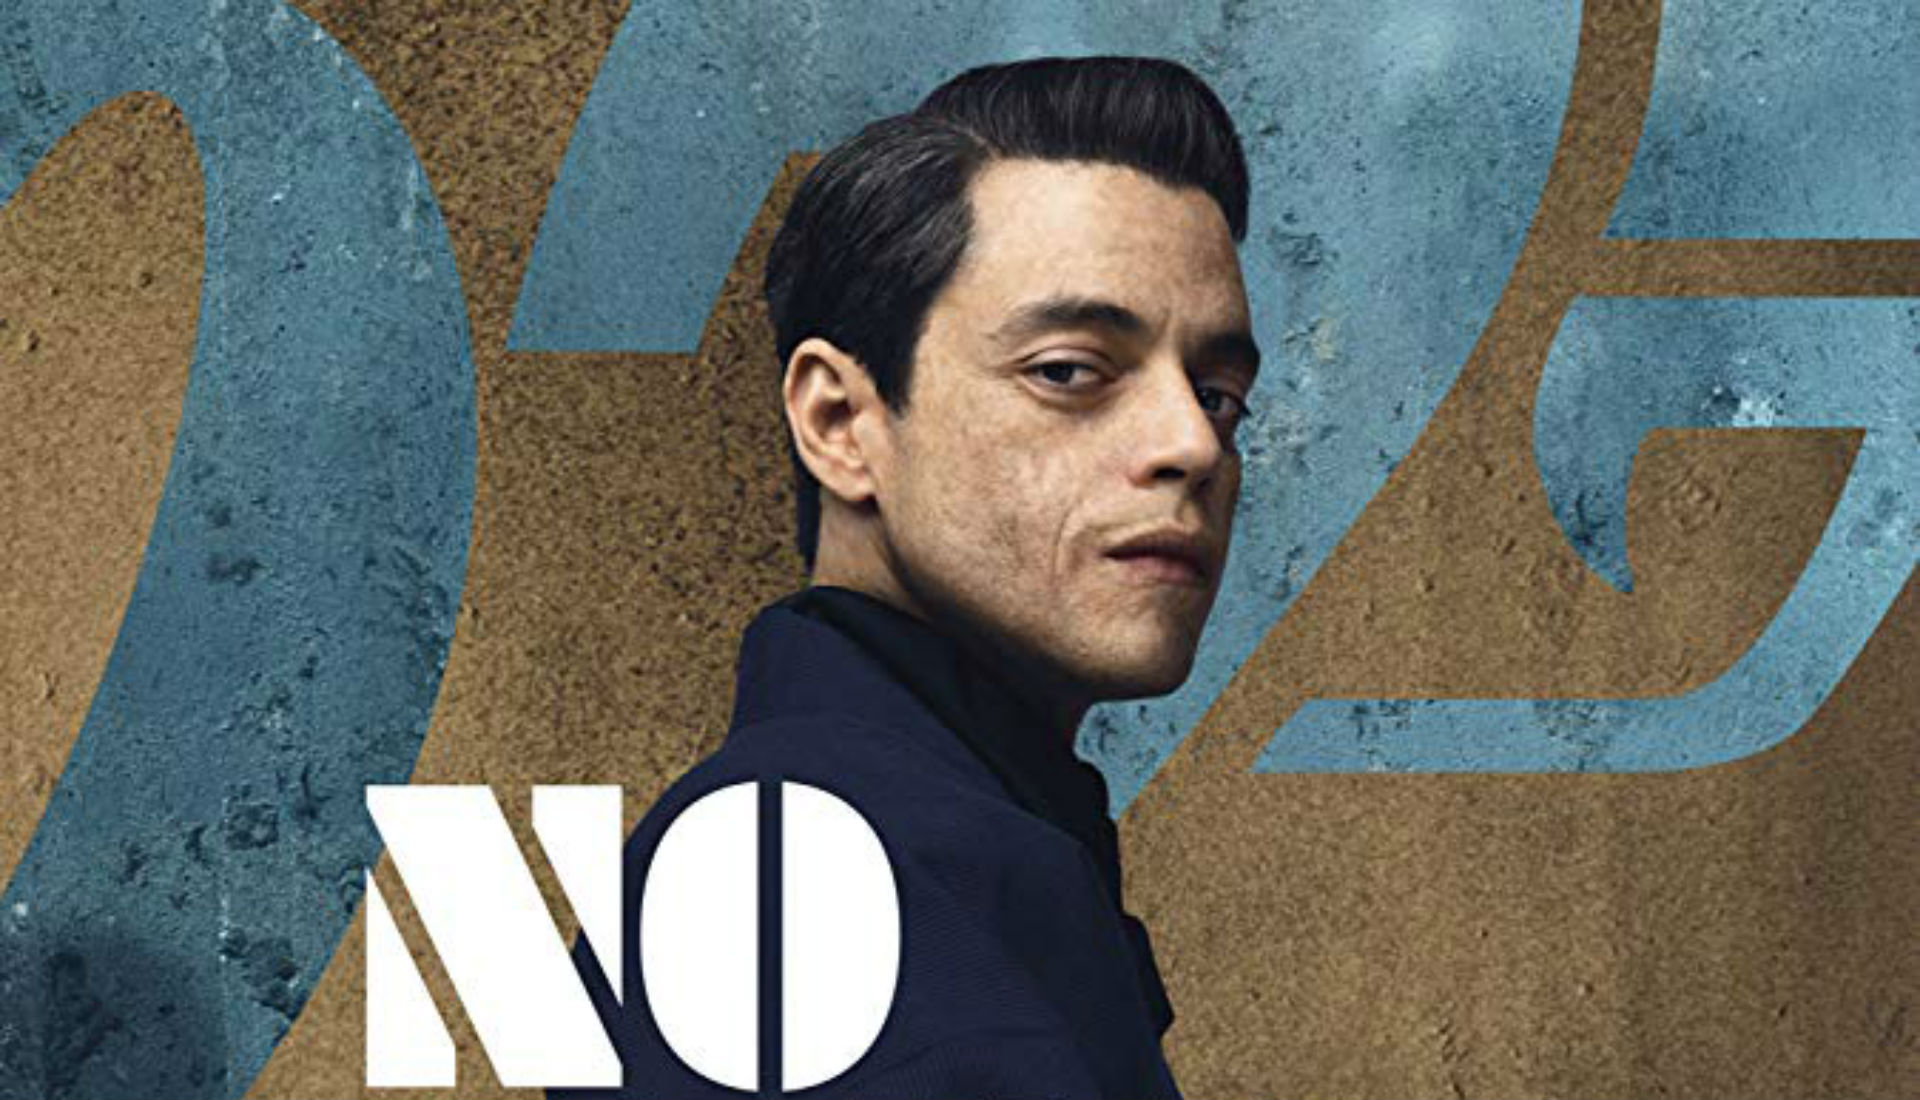 No Time to Die Trailer: Rami Malek Debuts His New  Bond Villain